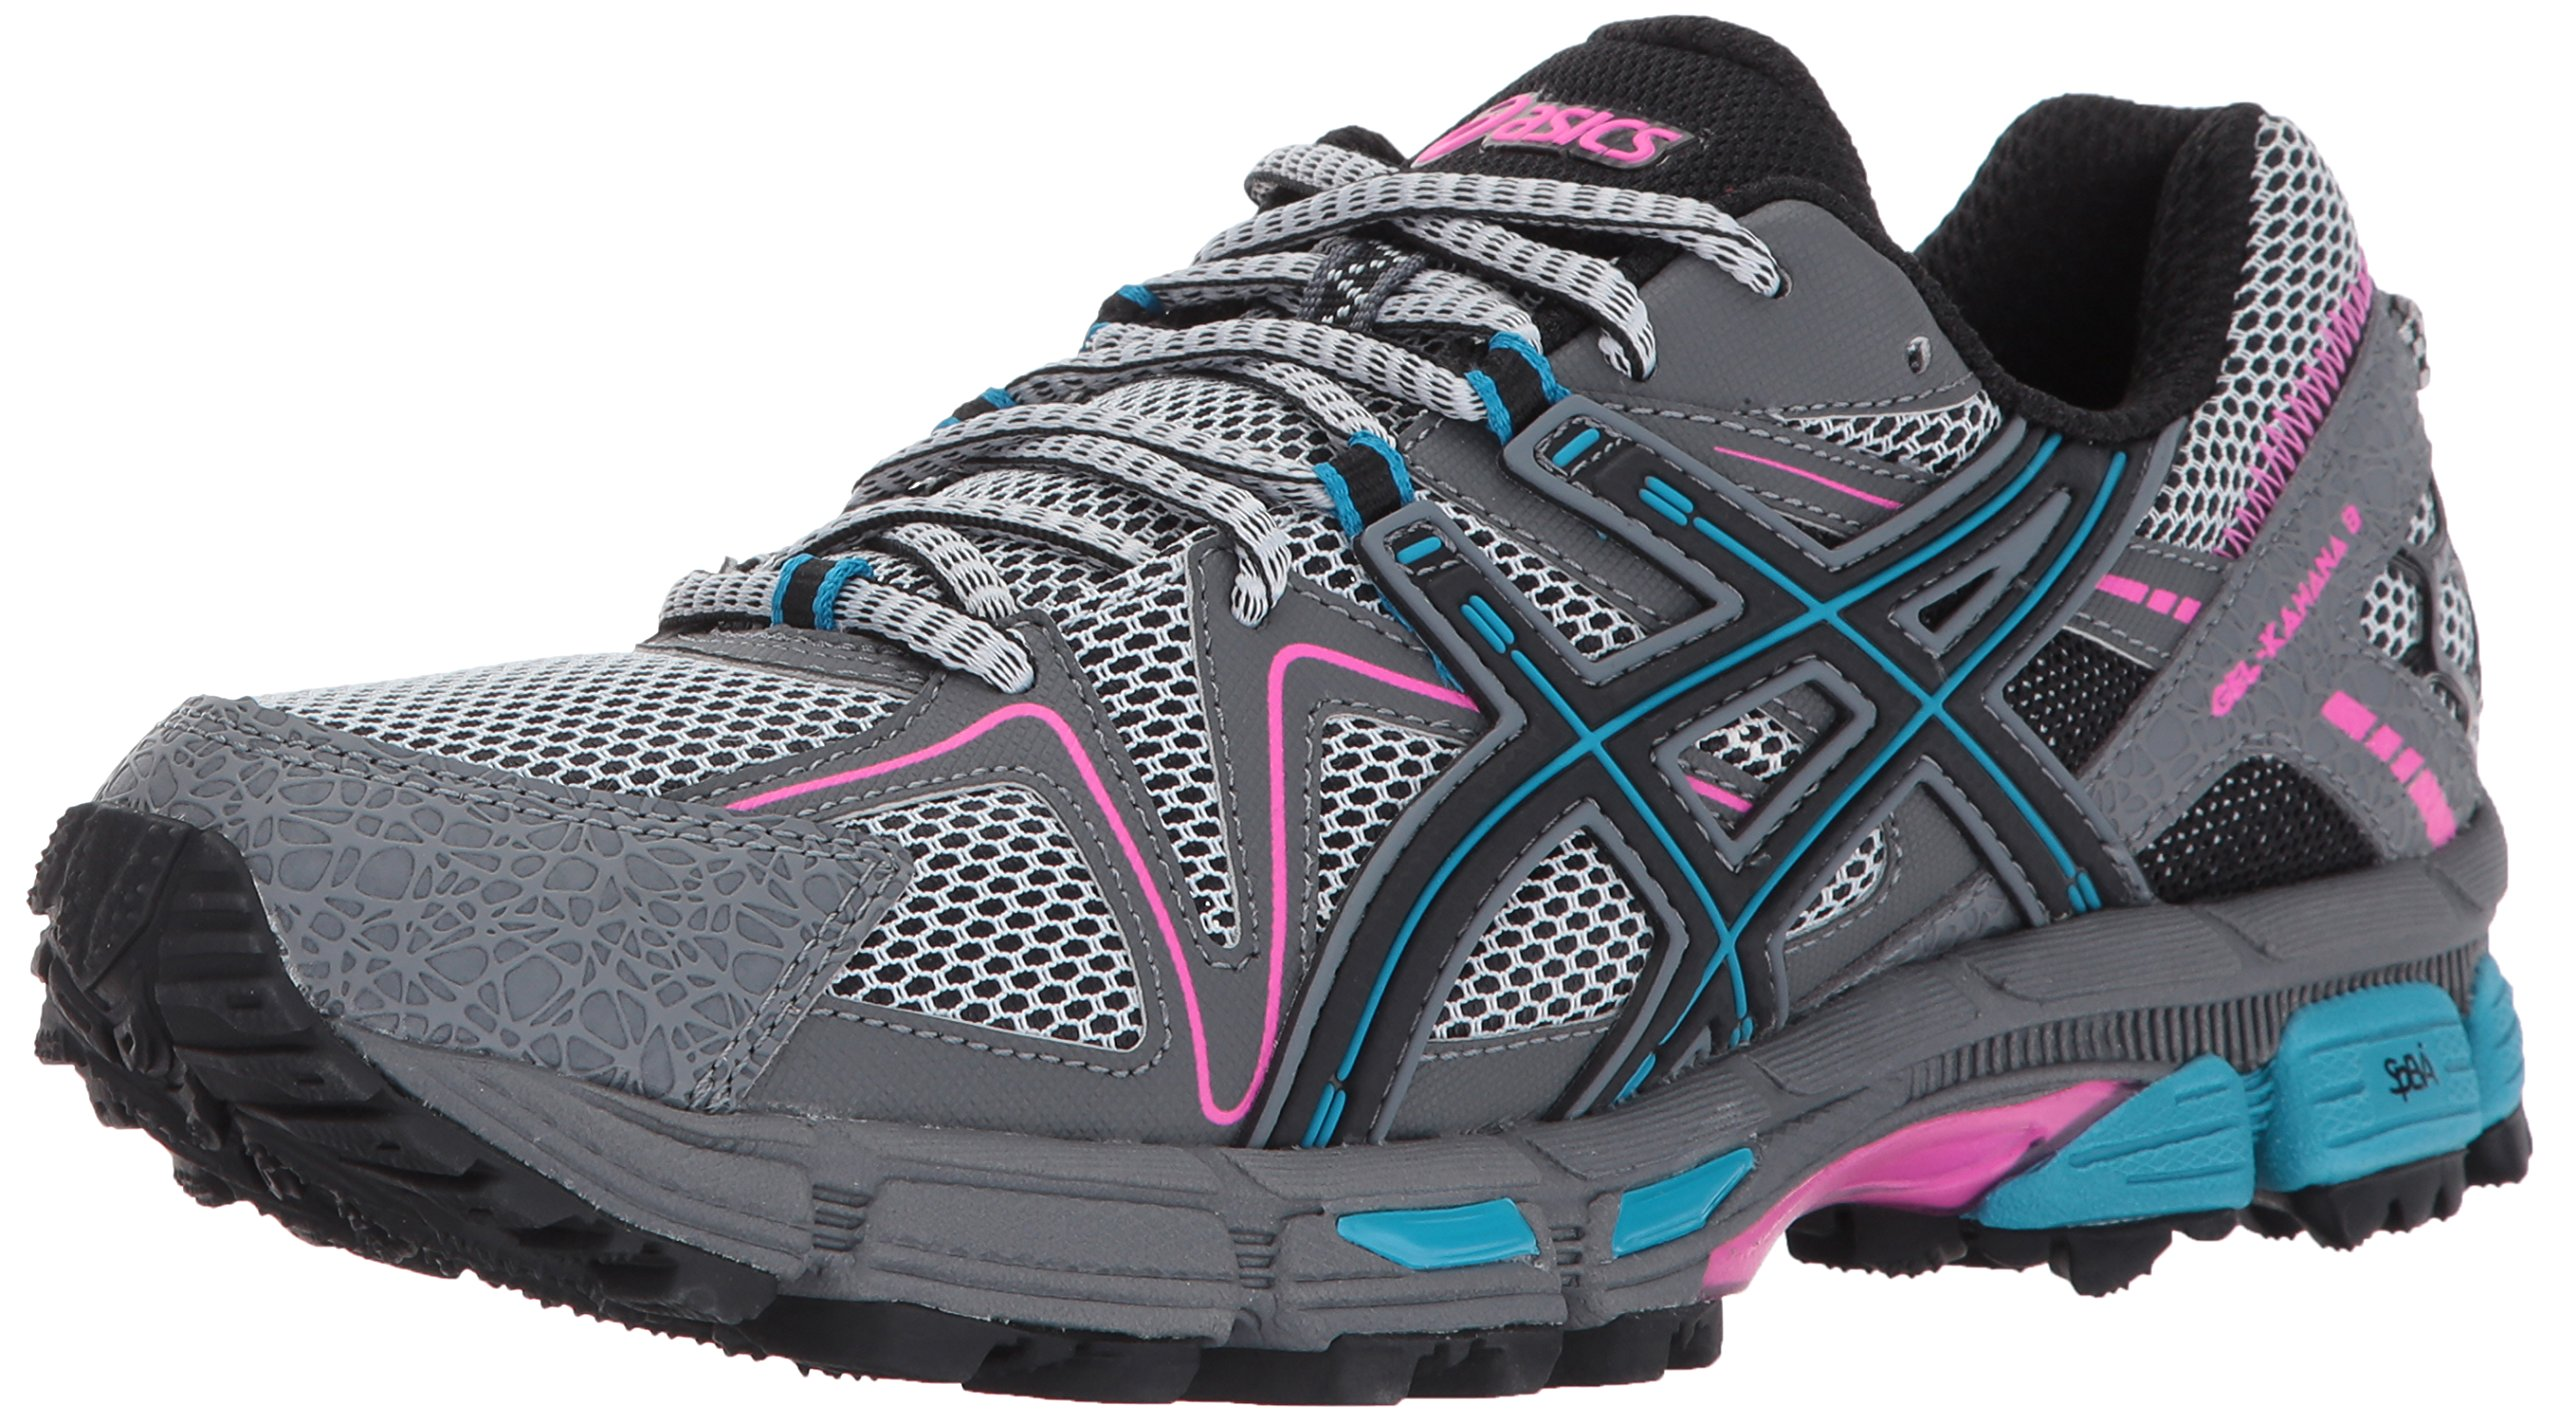 ASICS Womens Gel-Kahana 8 Running Shoe, Black/Island Blue/Pink Glow, 6.5 Medium US by ASICS